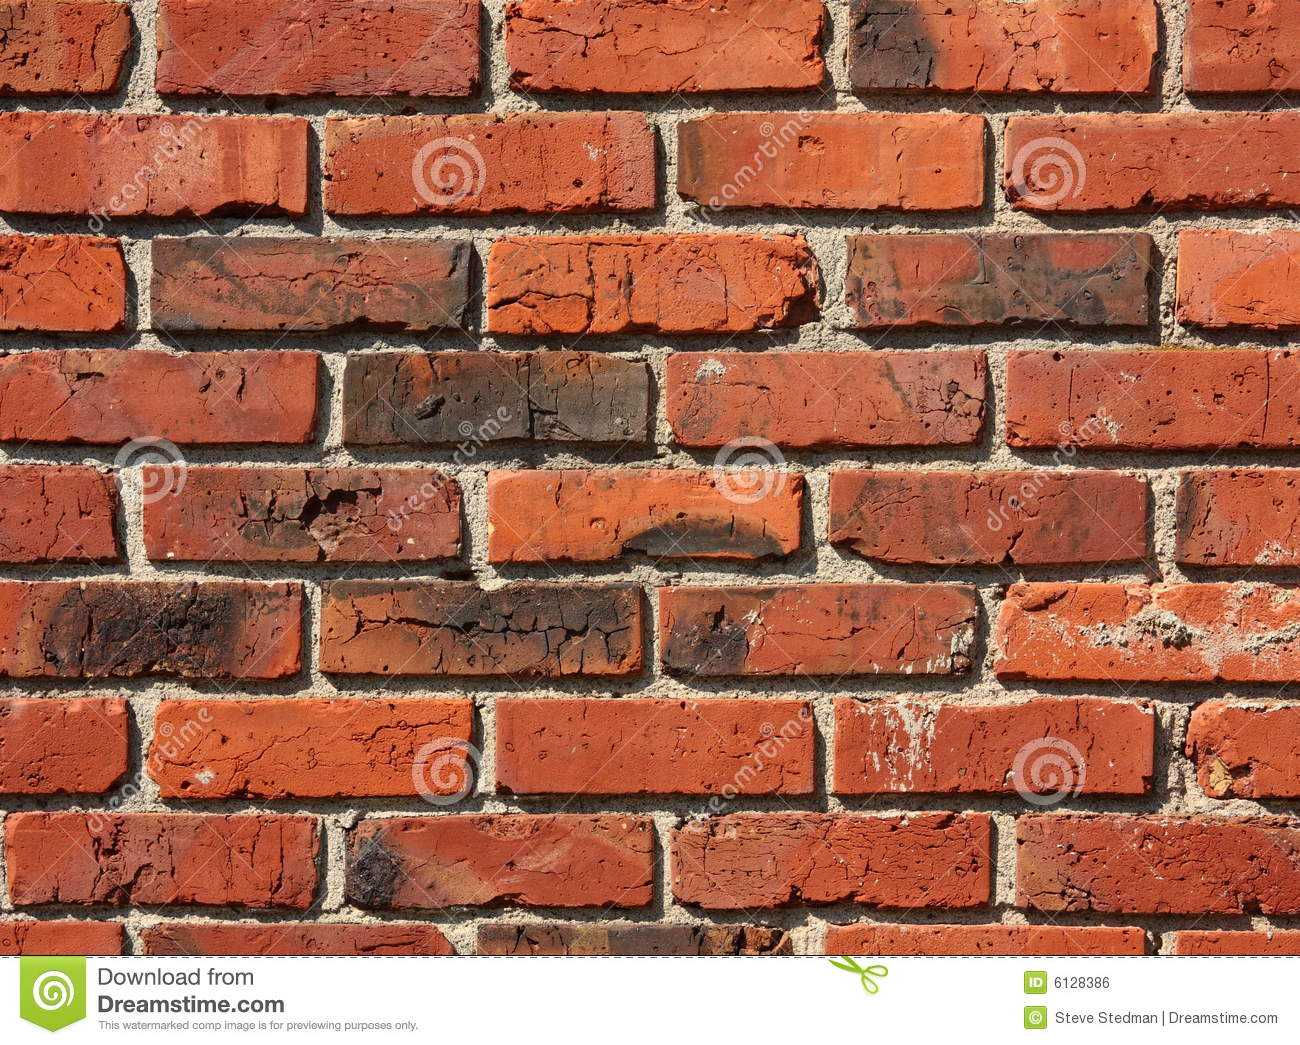 Old Brick And Mortar Wall Pattern Stock Photo - Image: 6128386